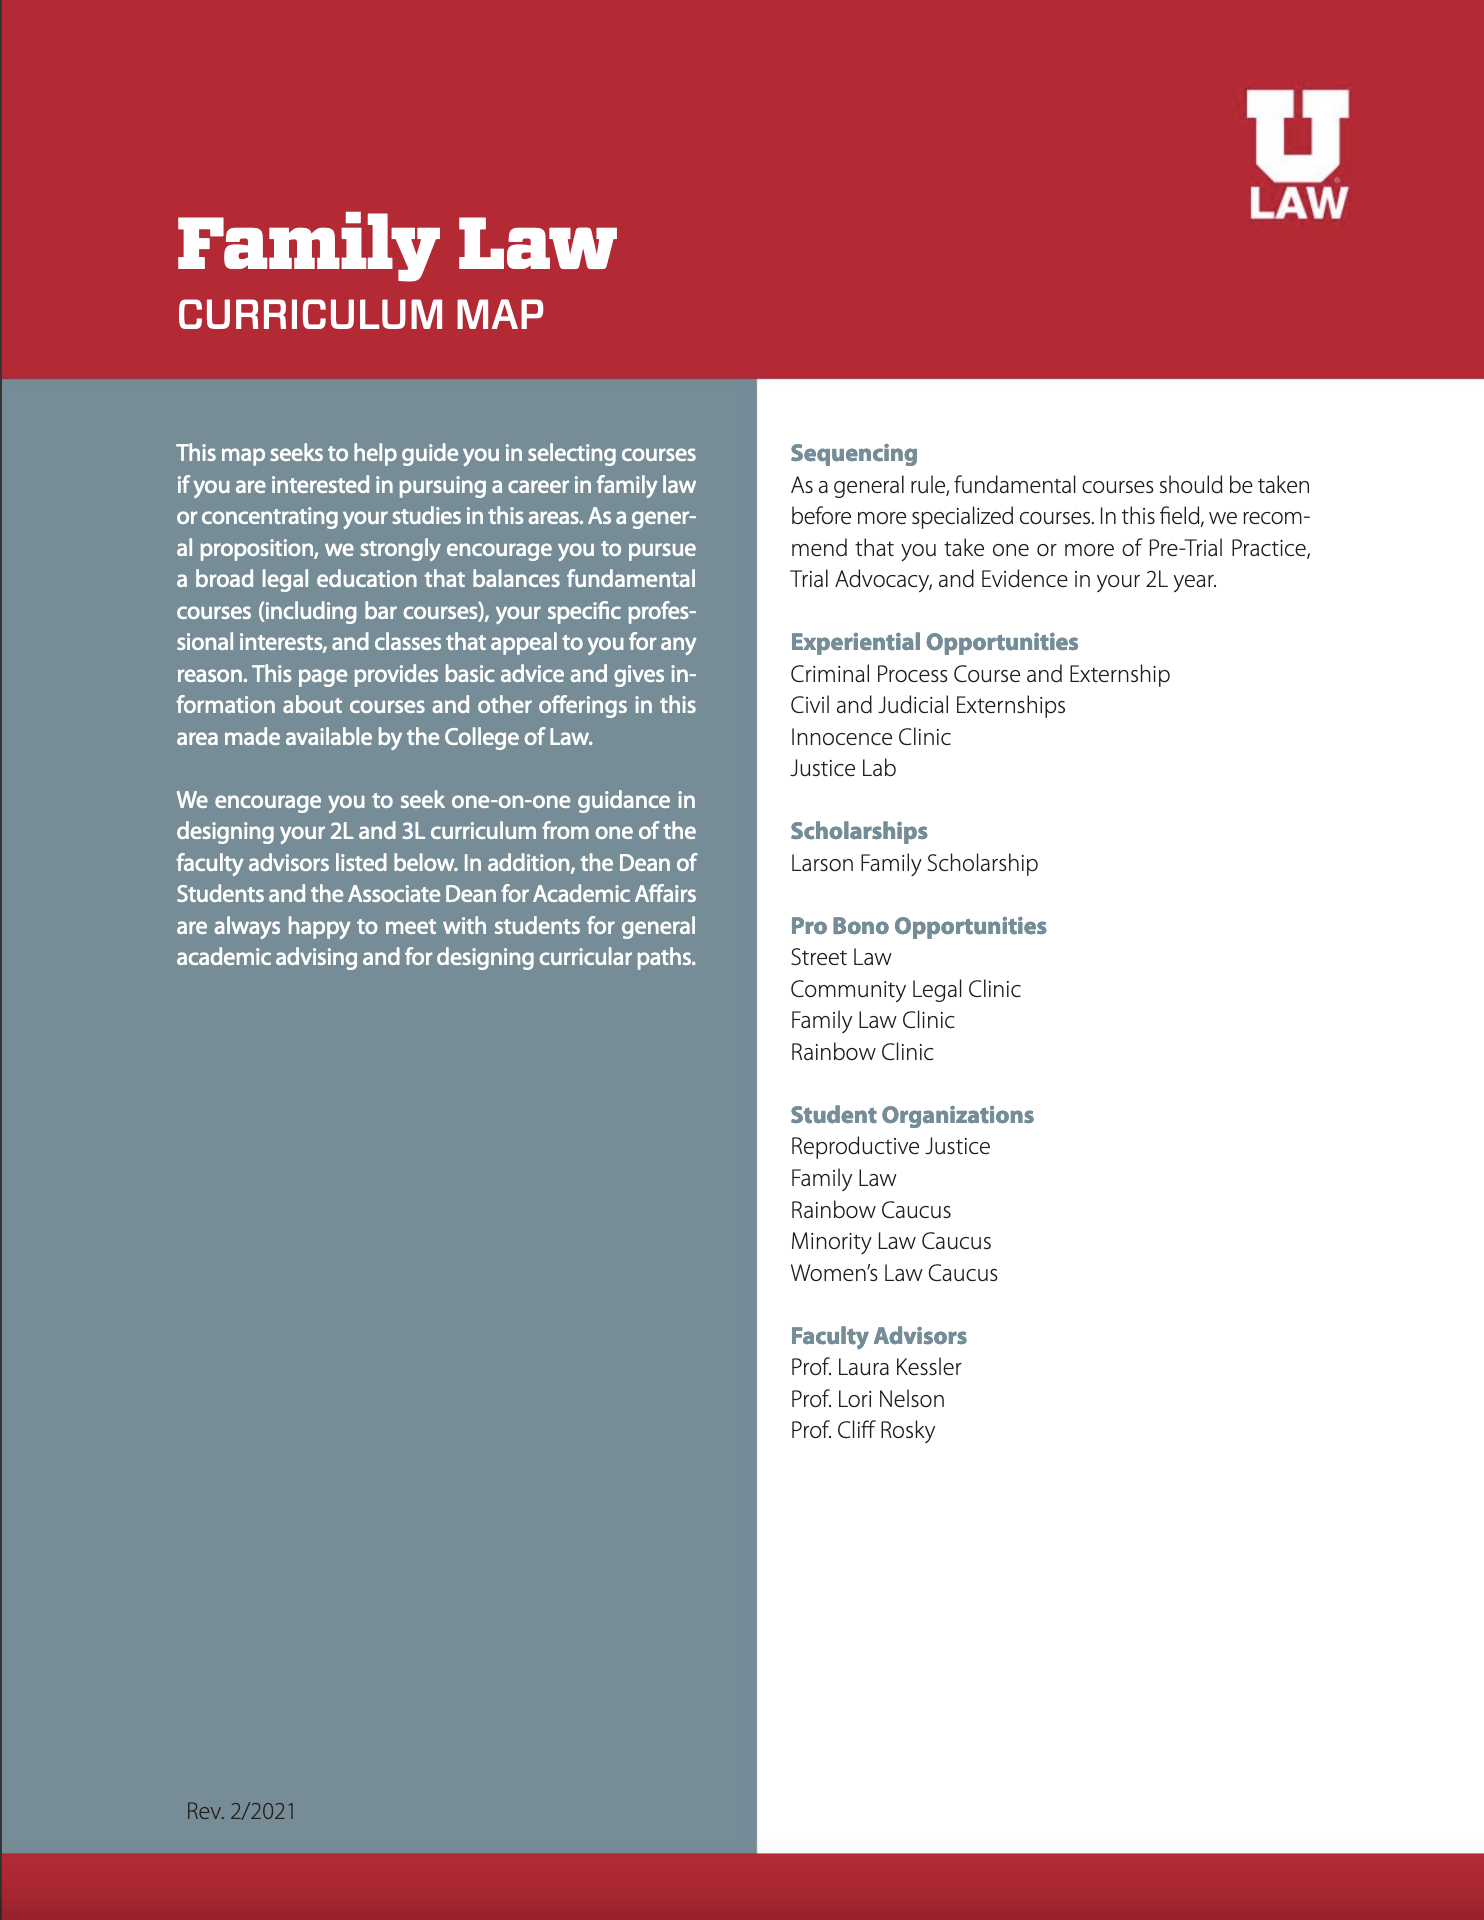 Family Law Curriculum Map